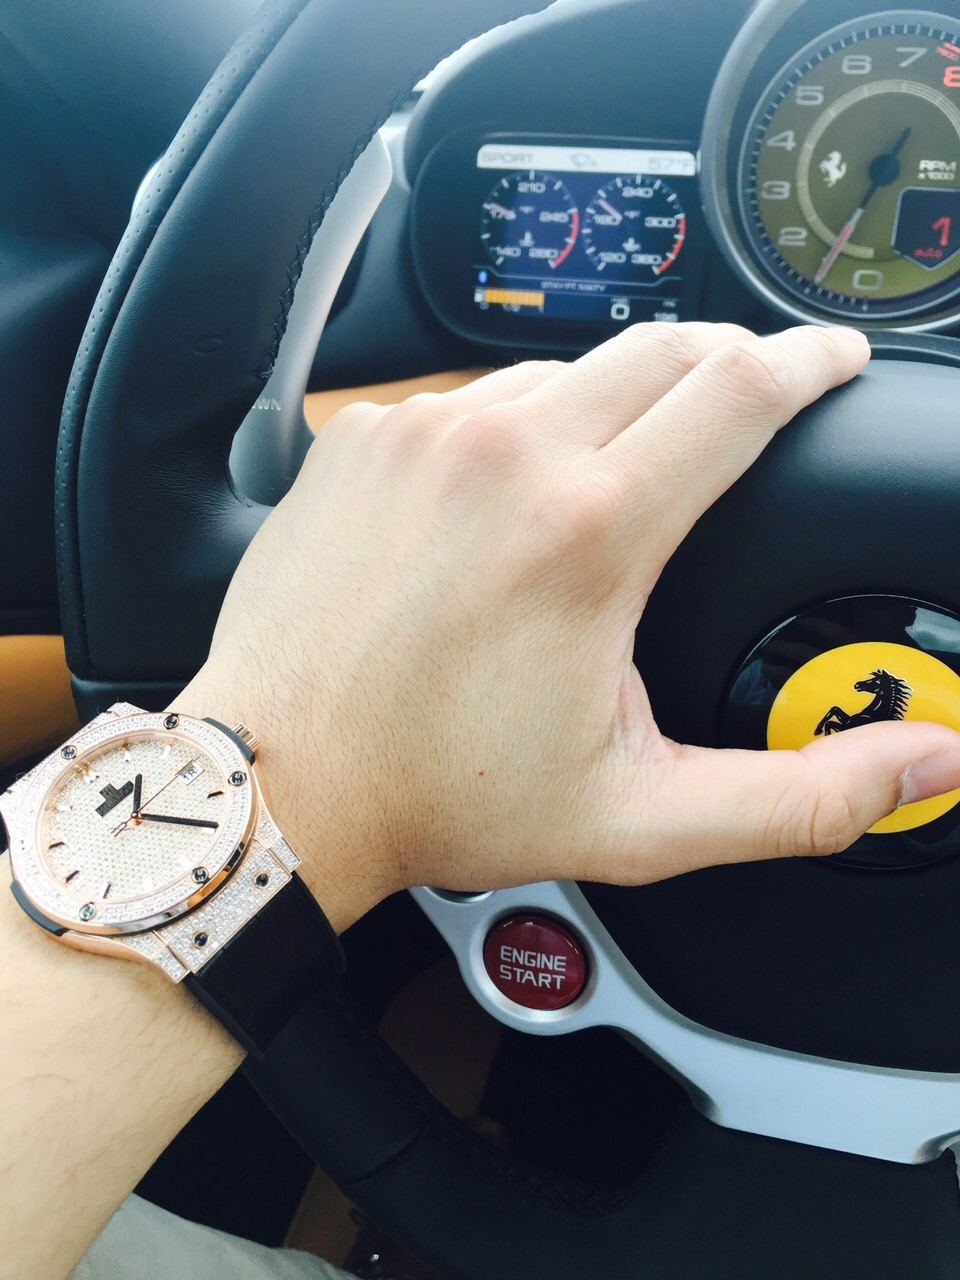 Ferrari Watch.jpg